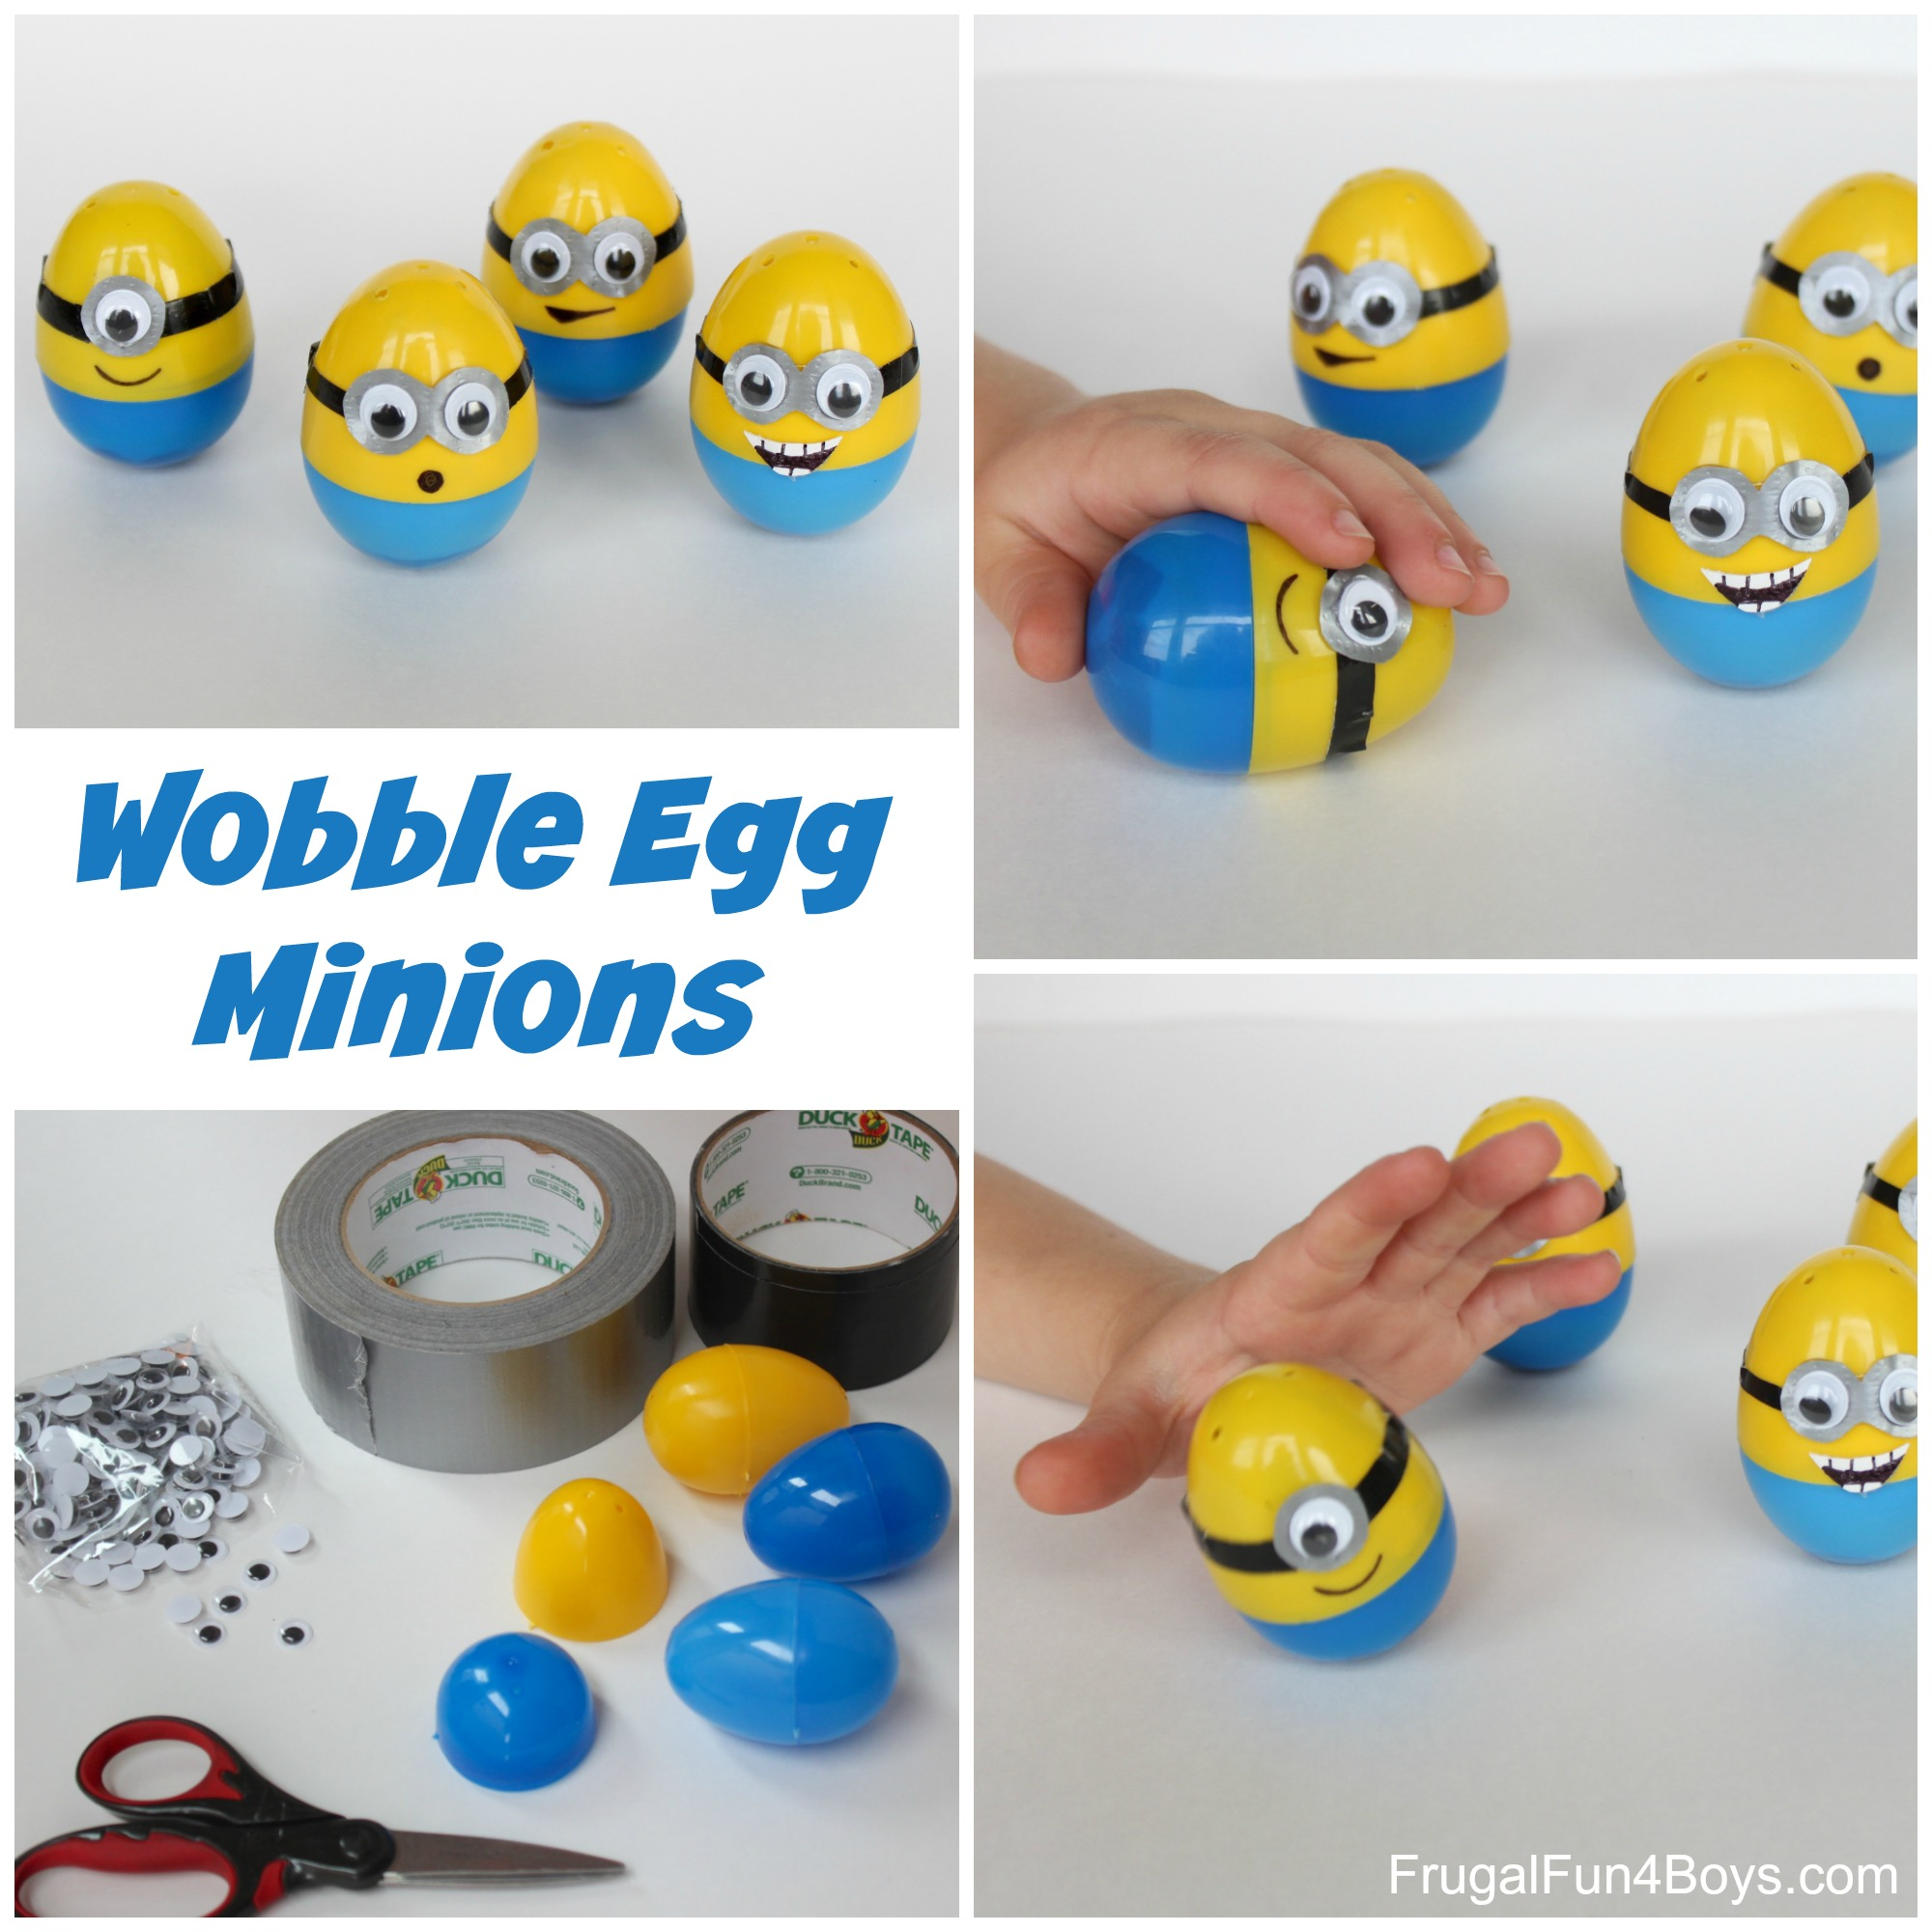 Minion Eggs - Push them down and they pop back up!